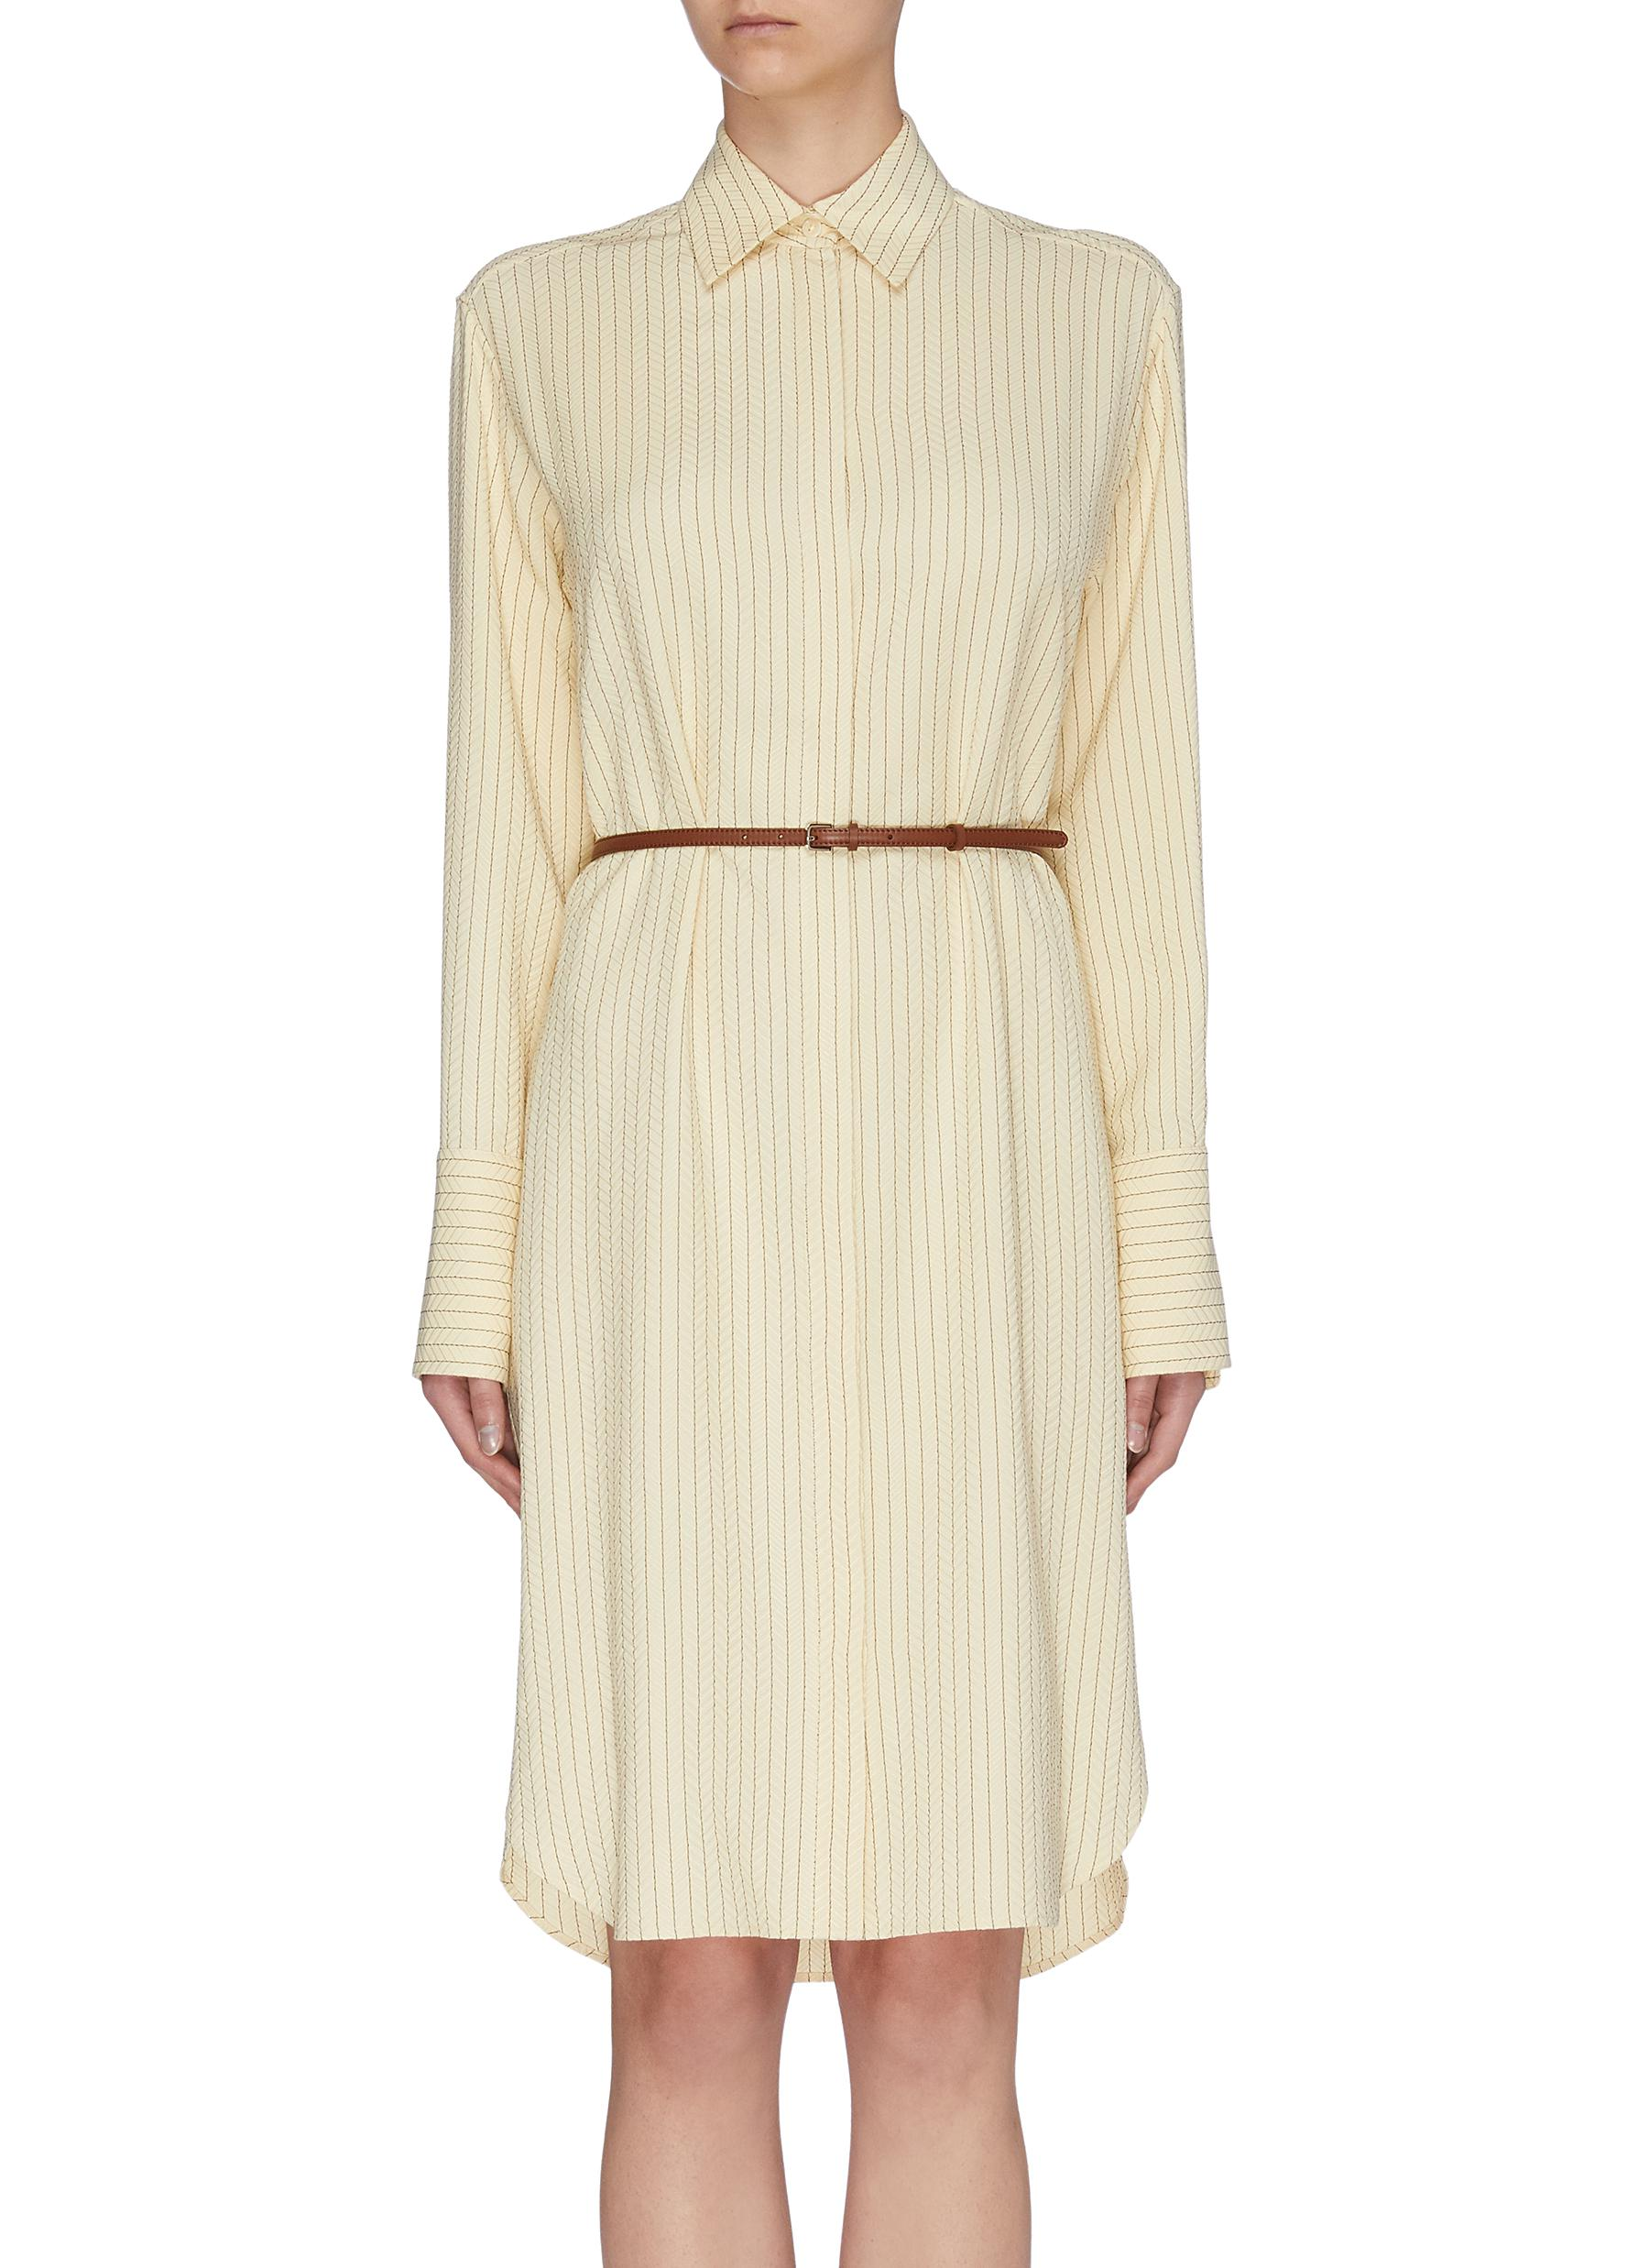 Buy The Row Dresses 'Sonia' belted herringbone print shirt dress